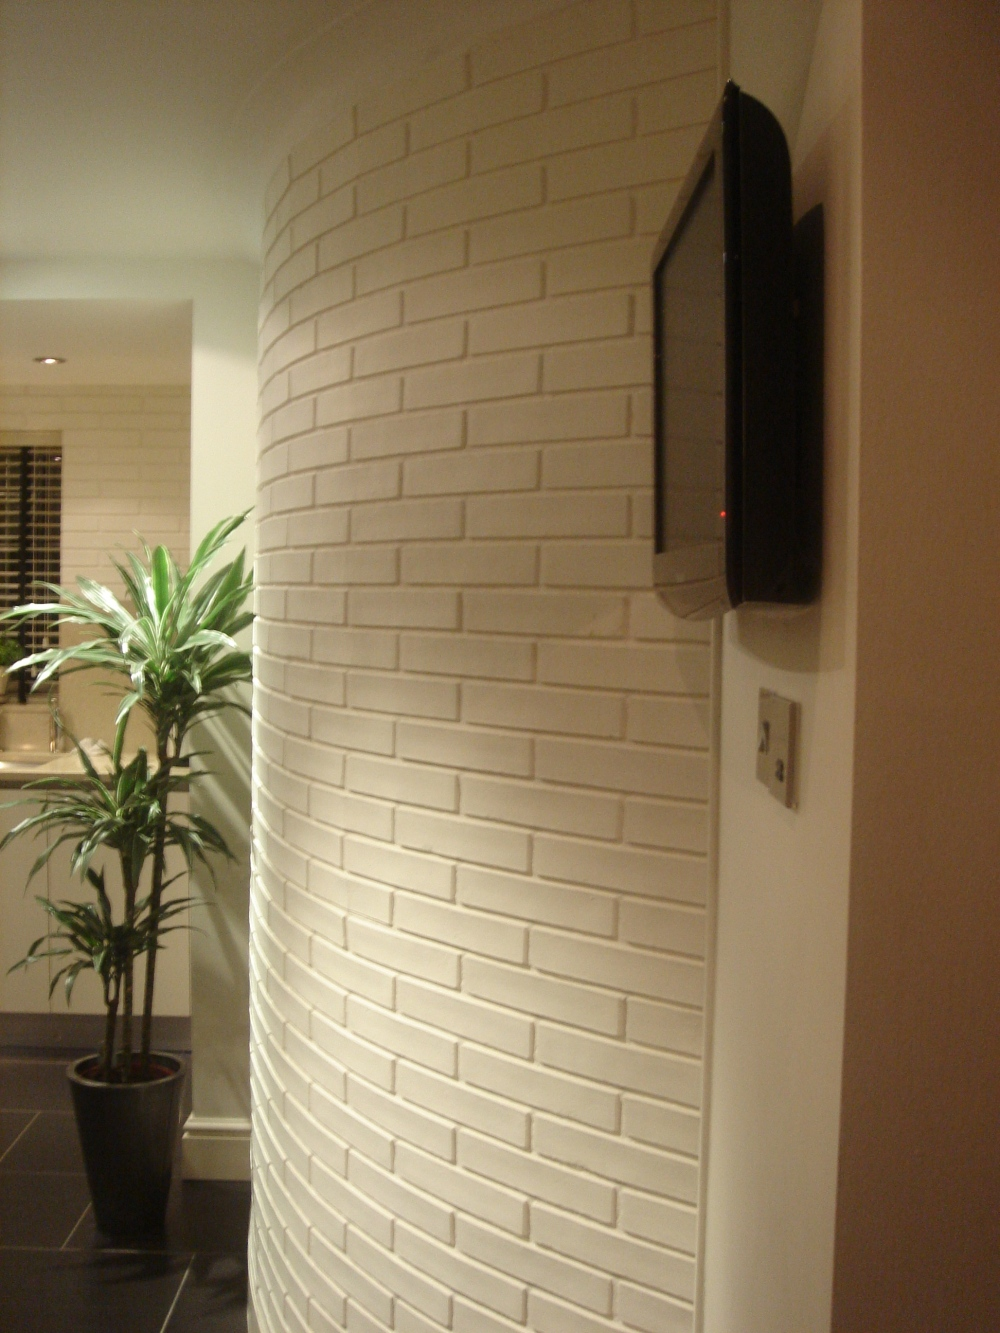 Pictures courtsey of Lynne Tomlinson 'Dreamwall white brick installation'